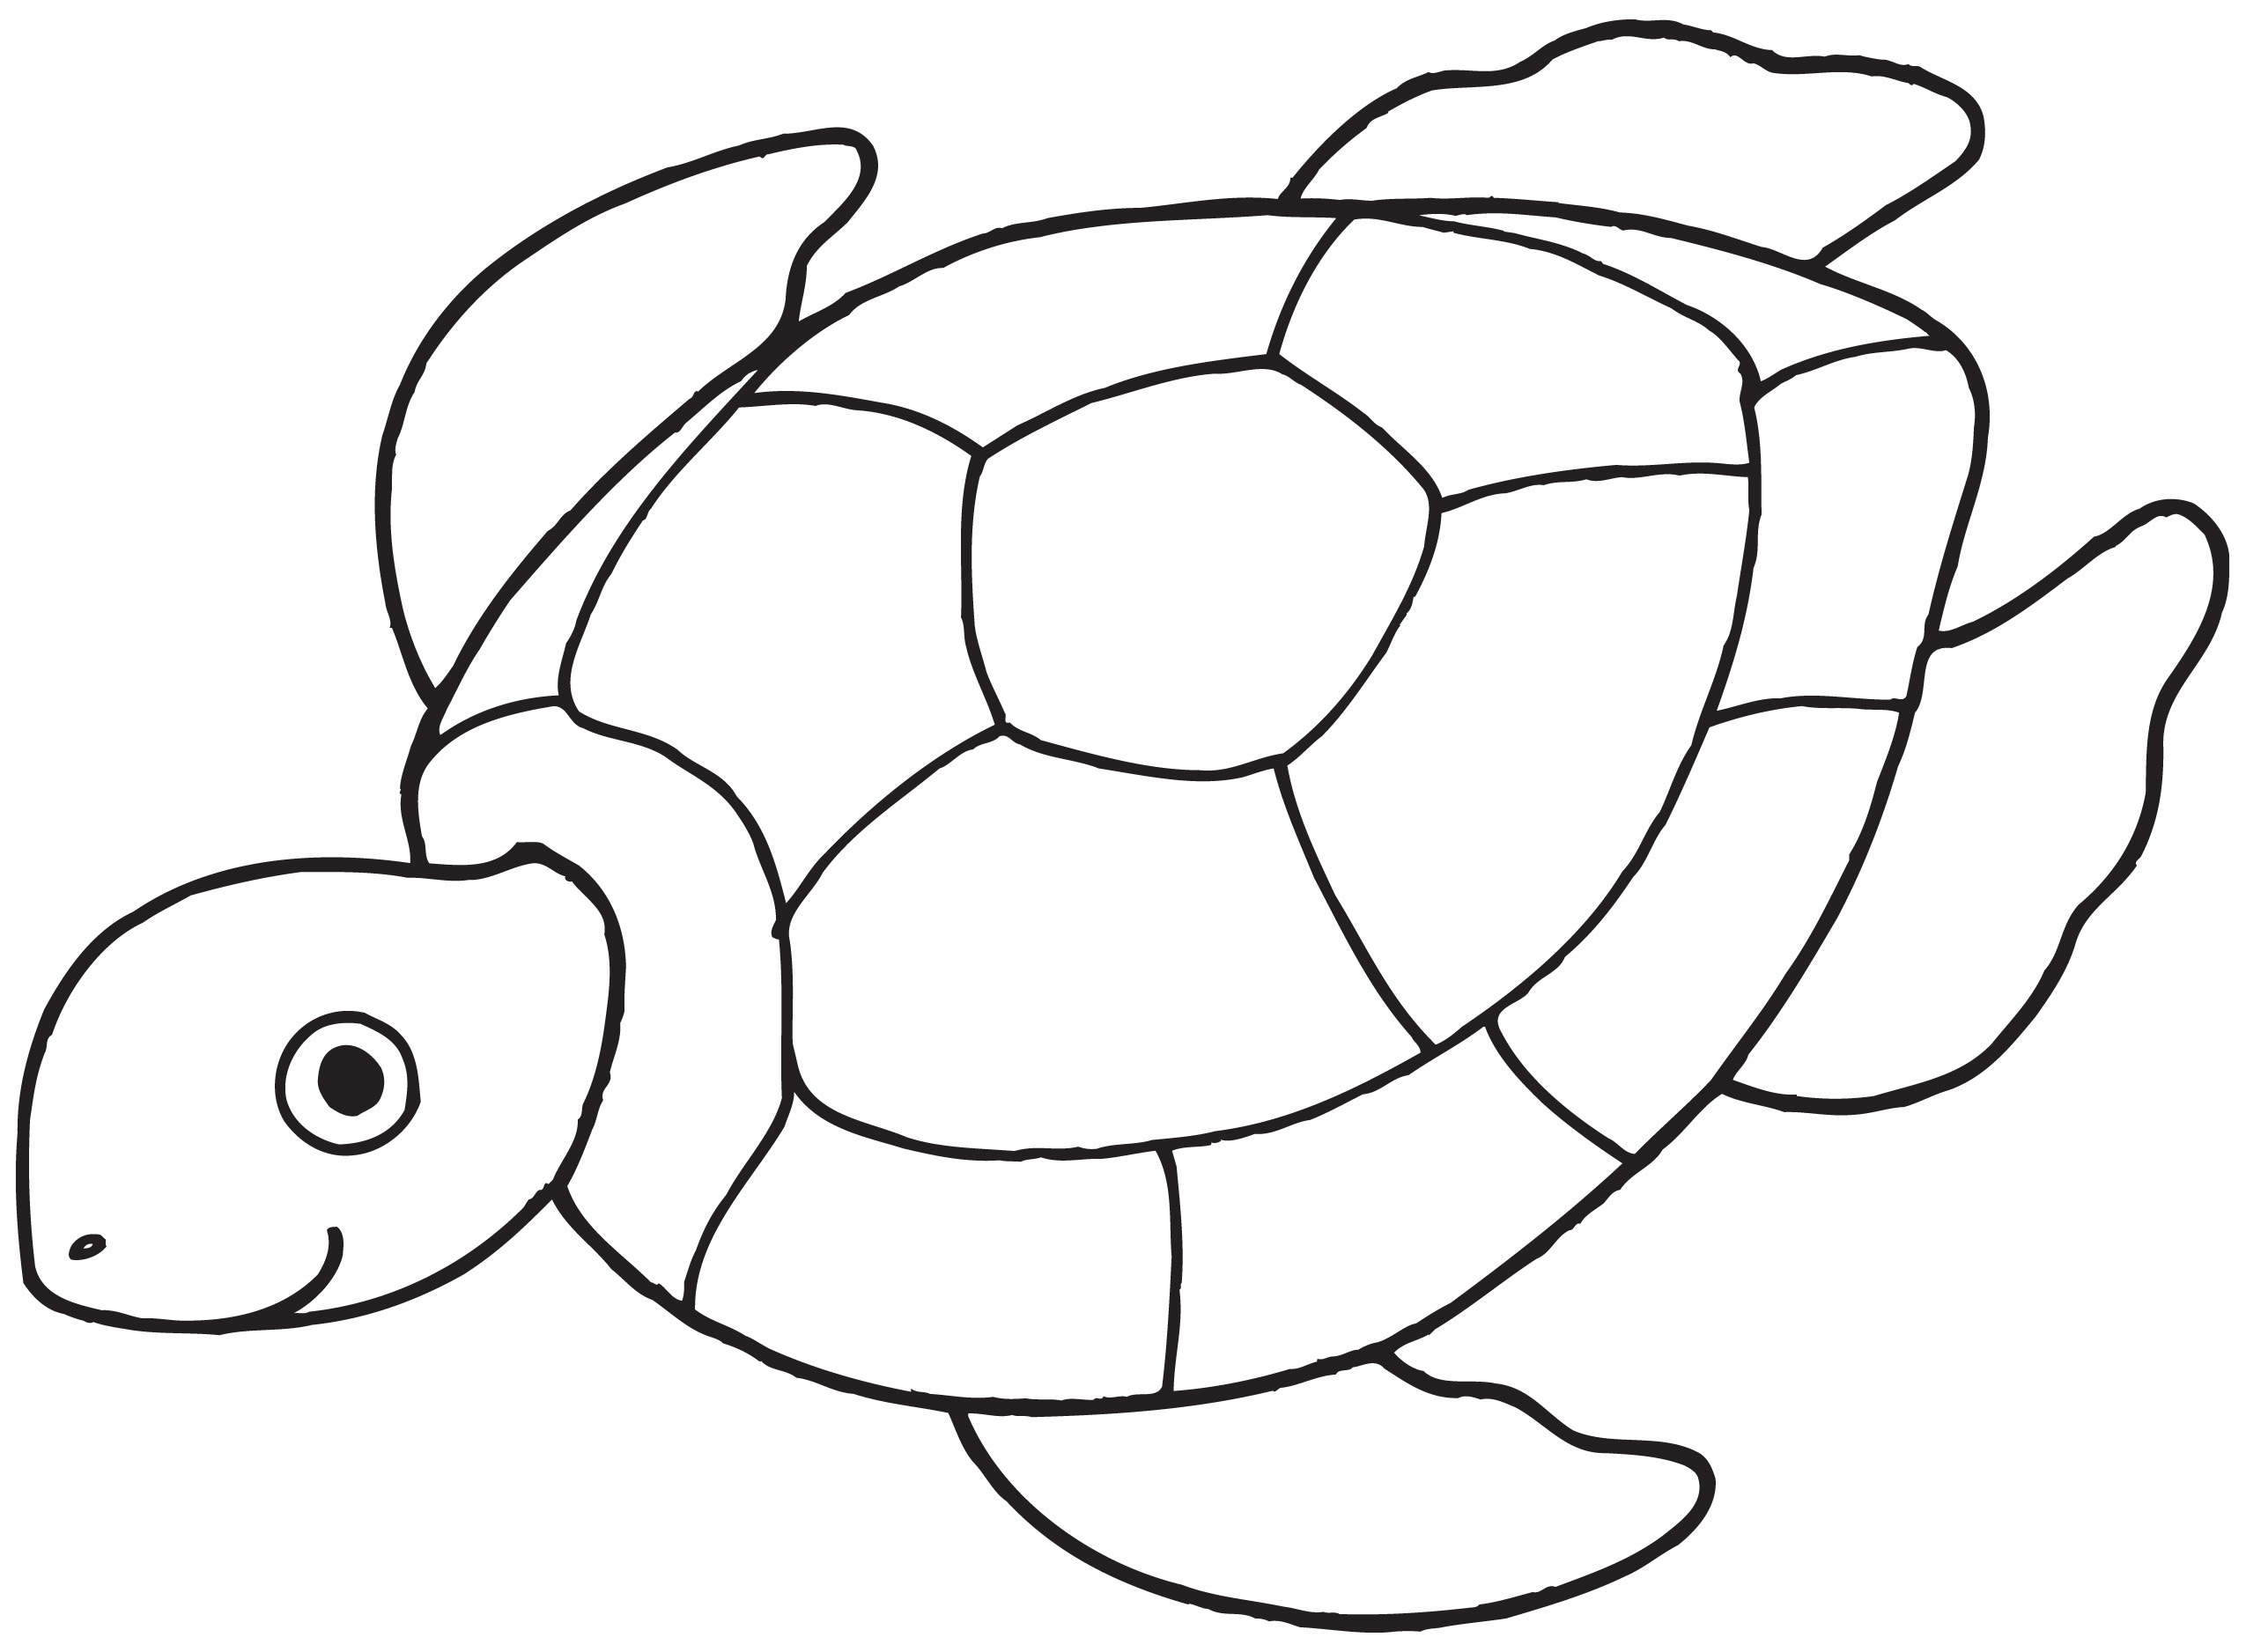 2550x1876 Easy Sea Turtle Drawing How To Draw A Sea Turtle, Cartoon Sea